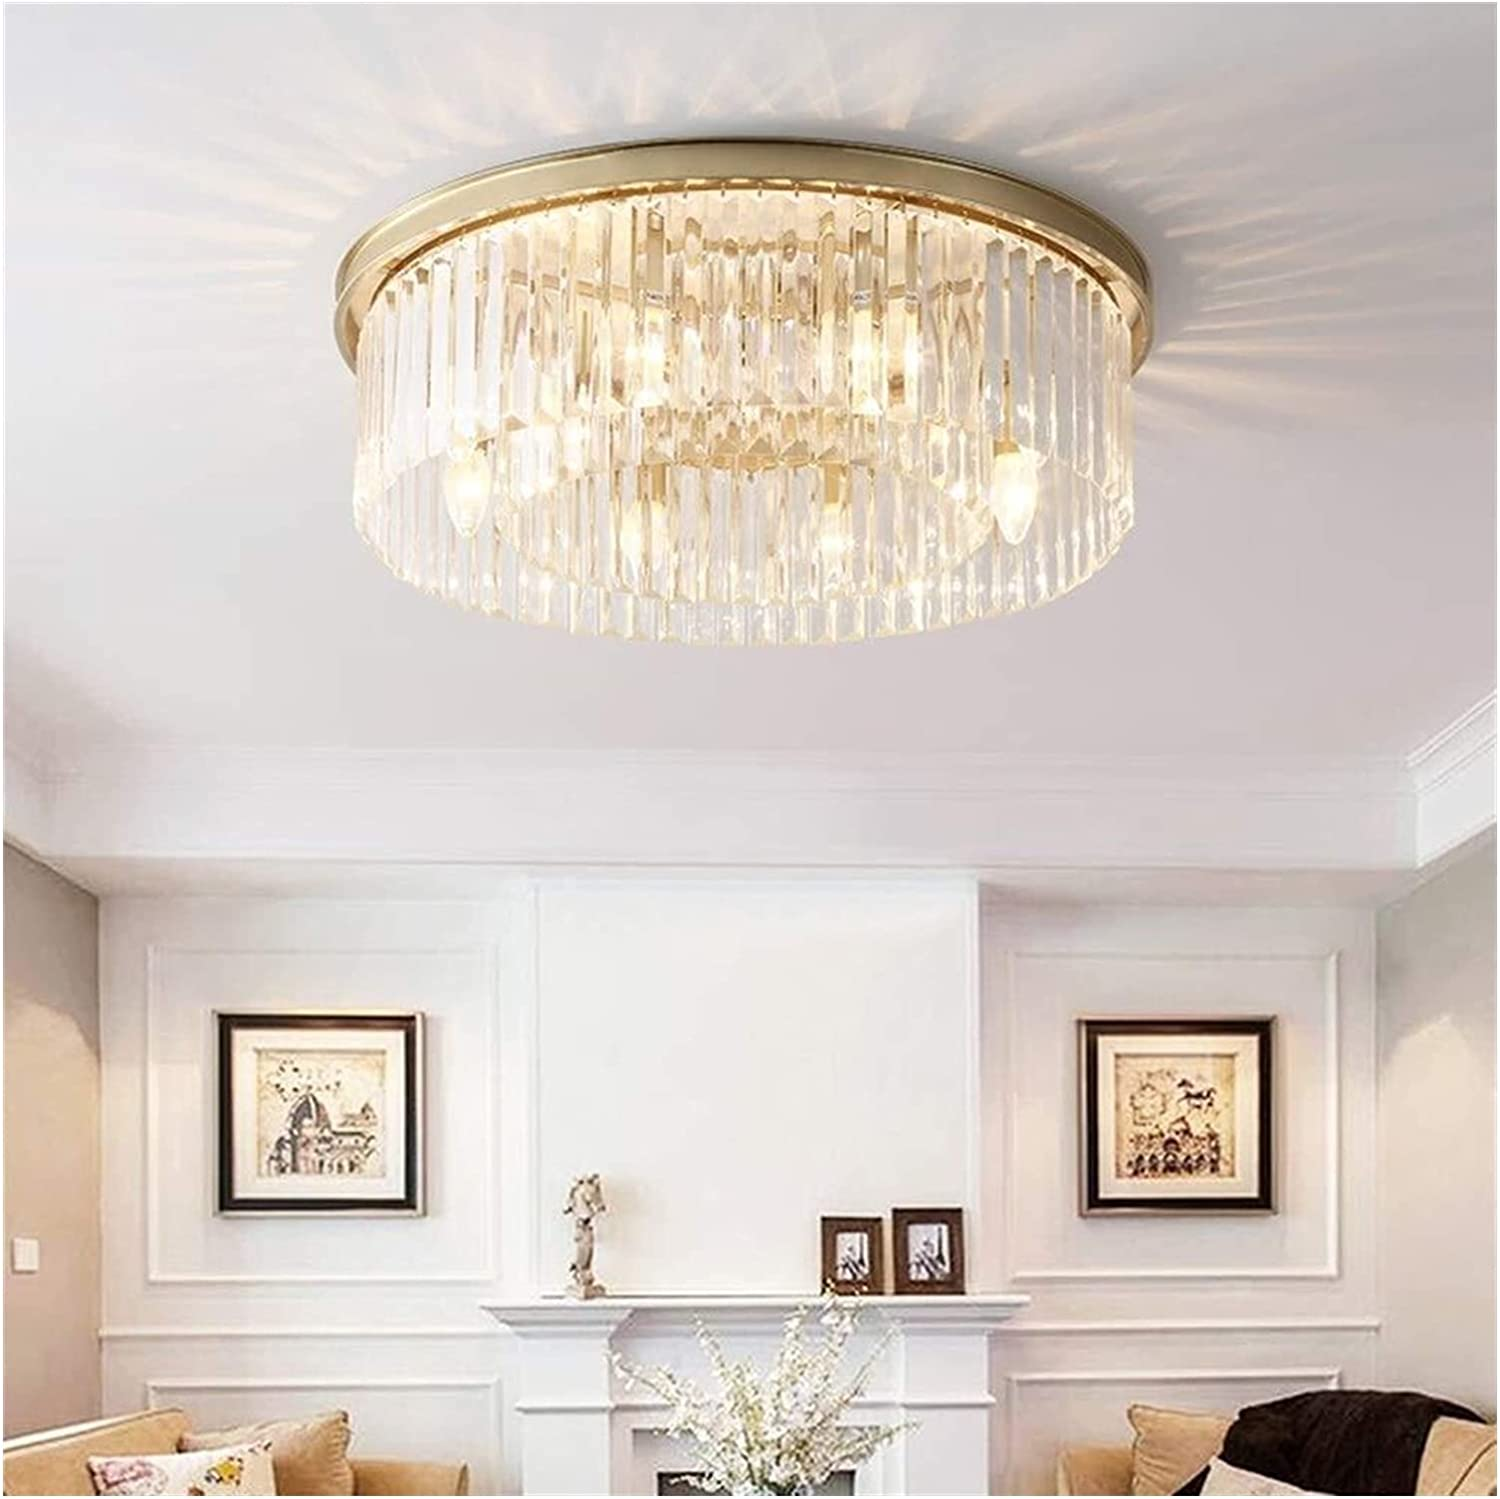 Hangarone Crystal Popular shop is the lowest price challenge Chandelier European Ceiling LED store Style